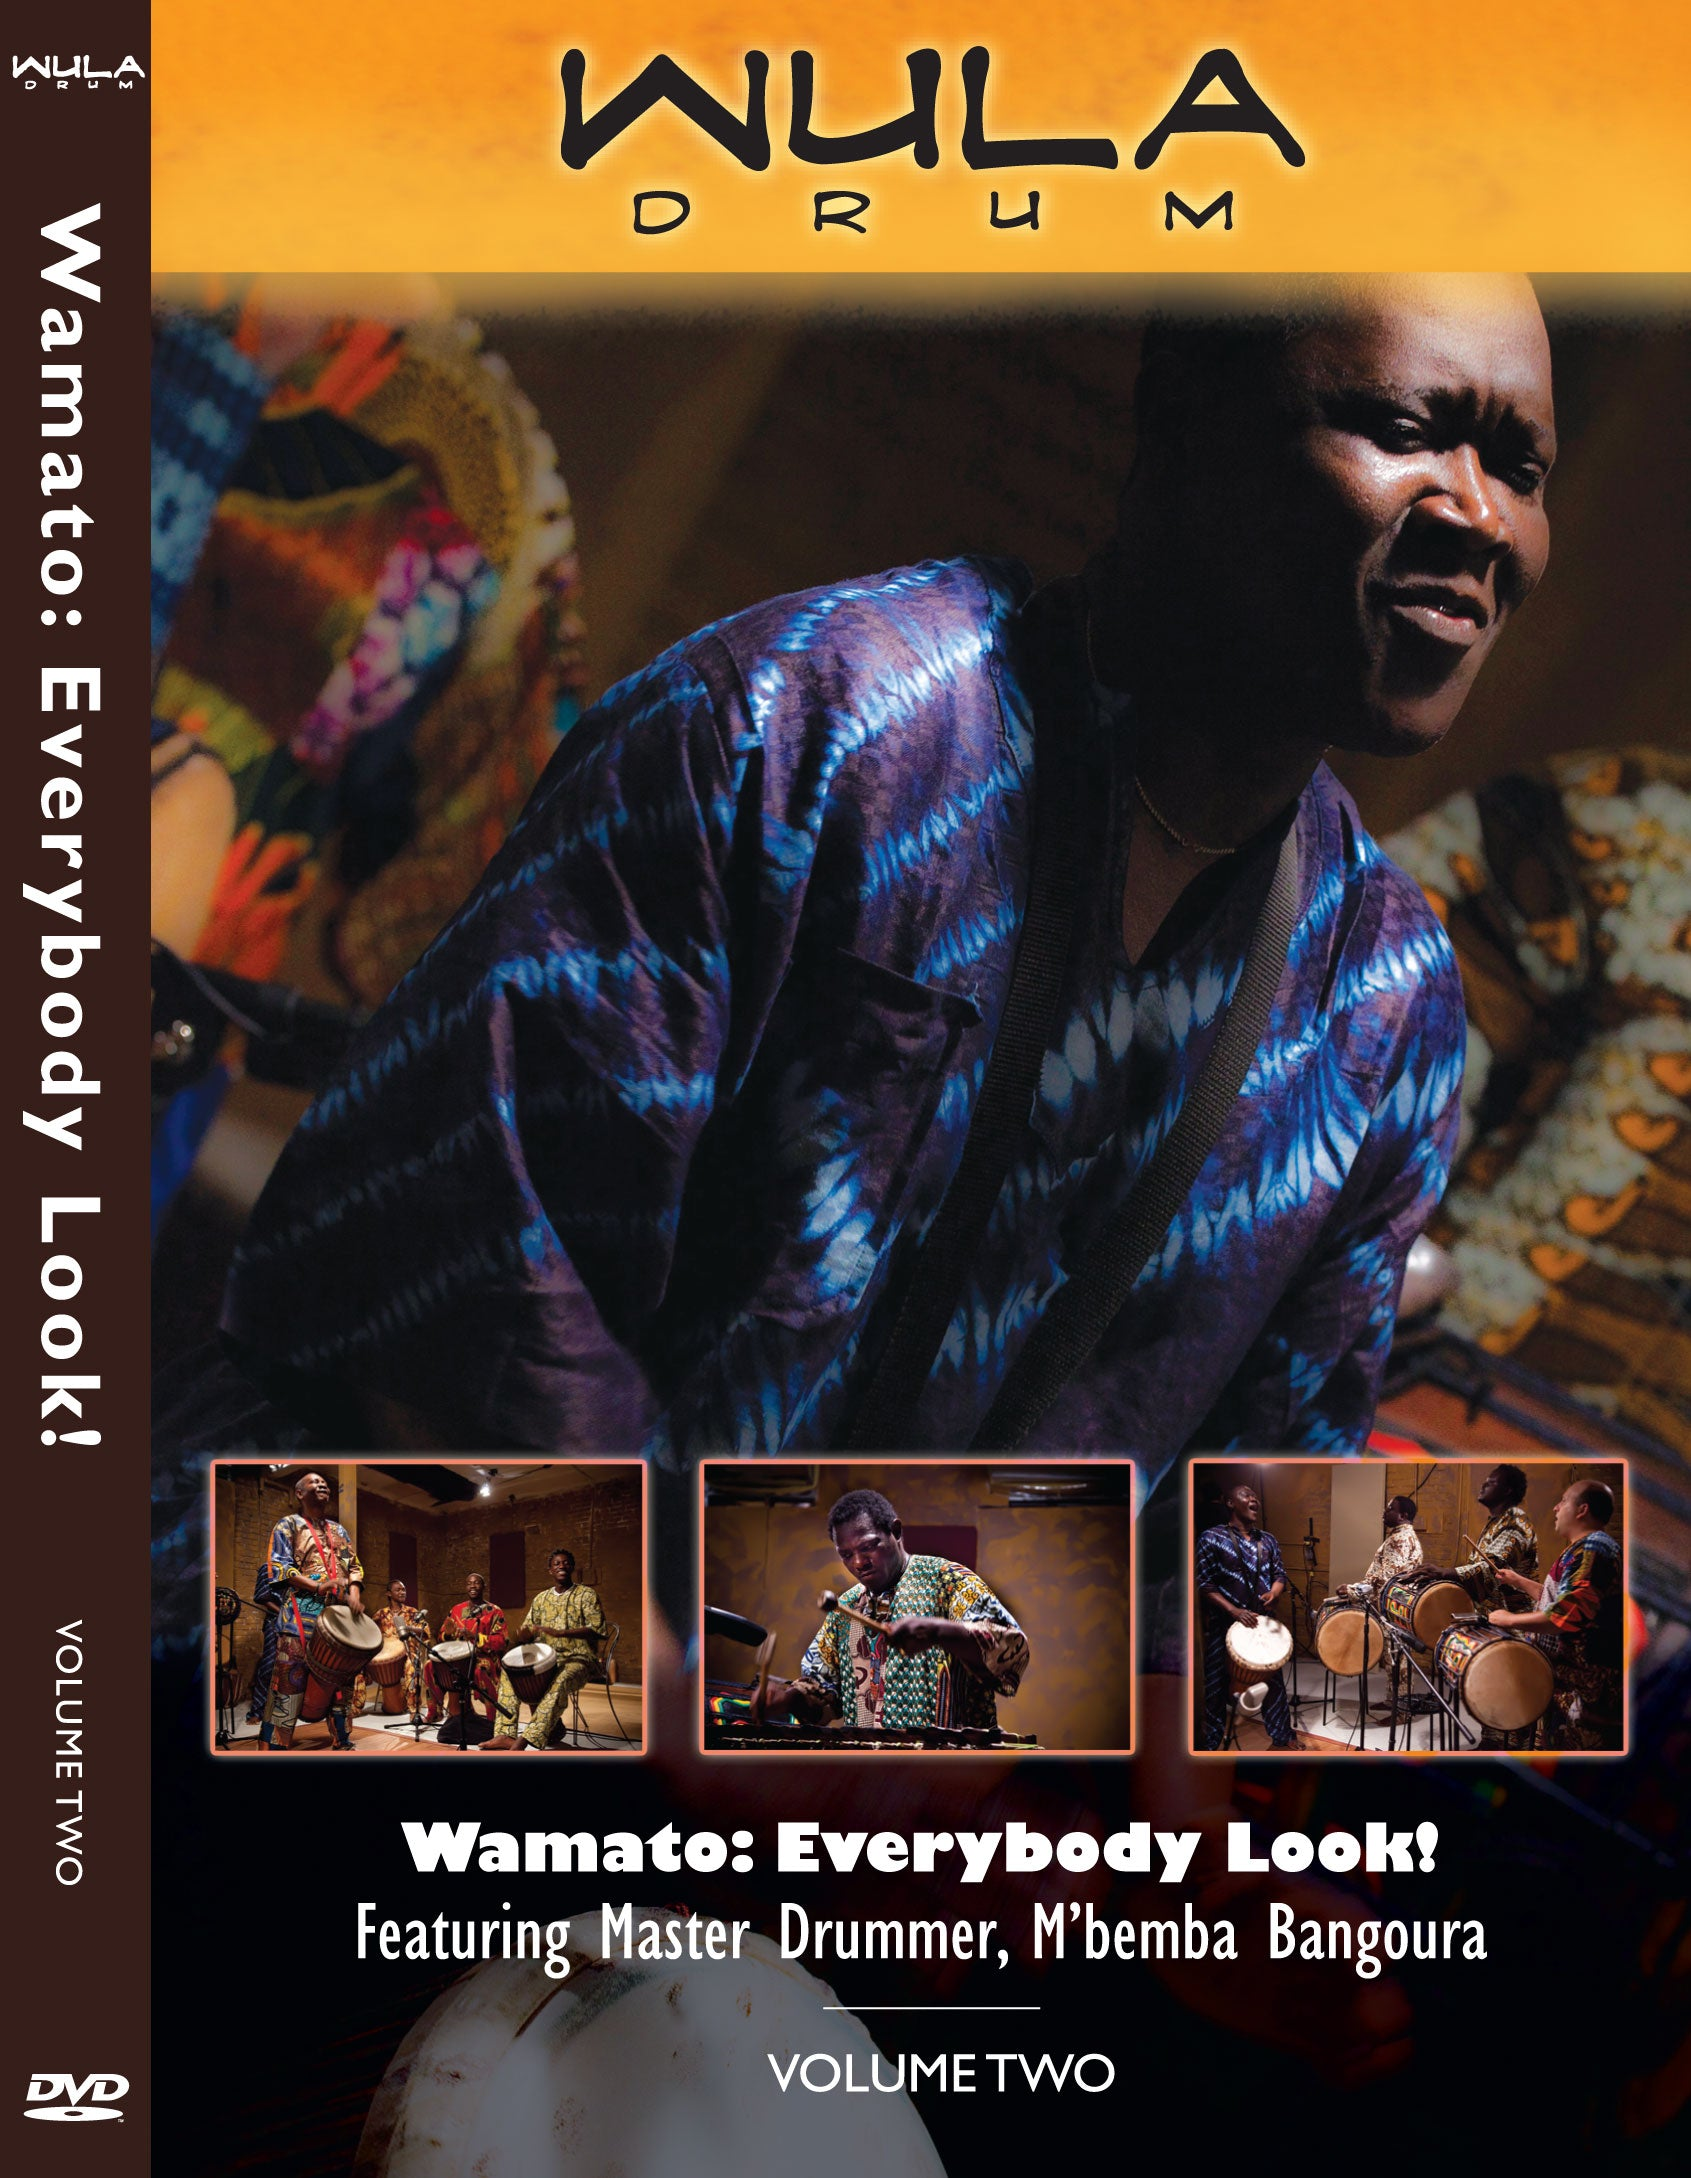 Wula Wamato Instructional DVD (PHYSICAL COPY) Vol. 2 from M'Bemba Bangoura